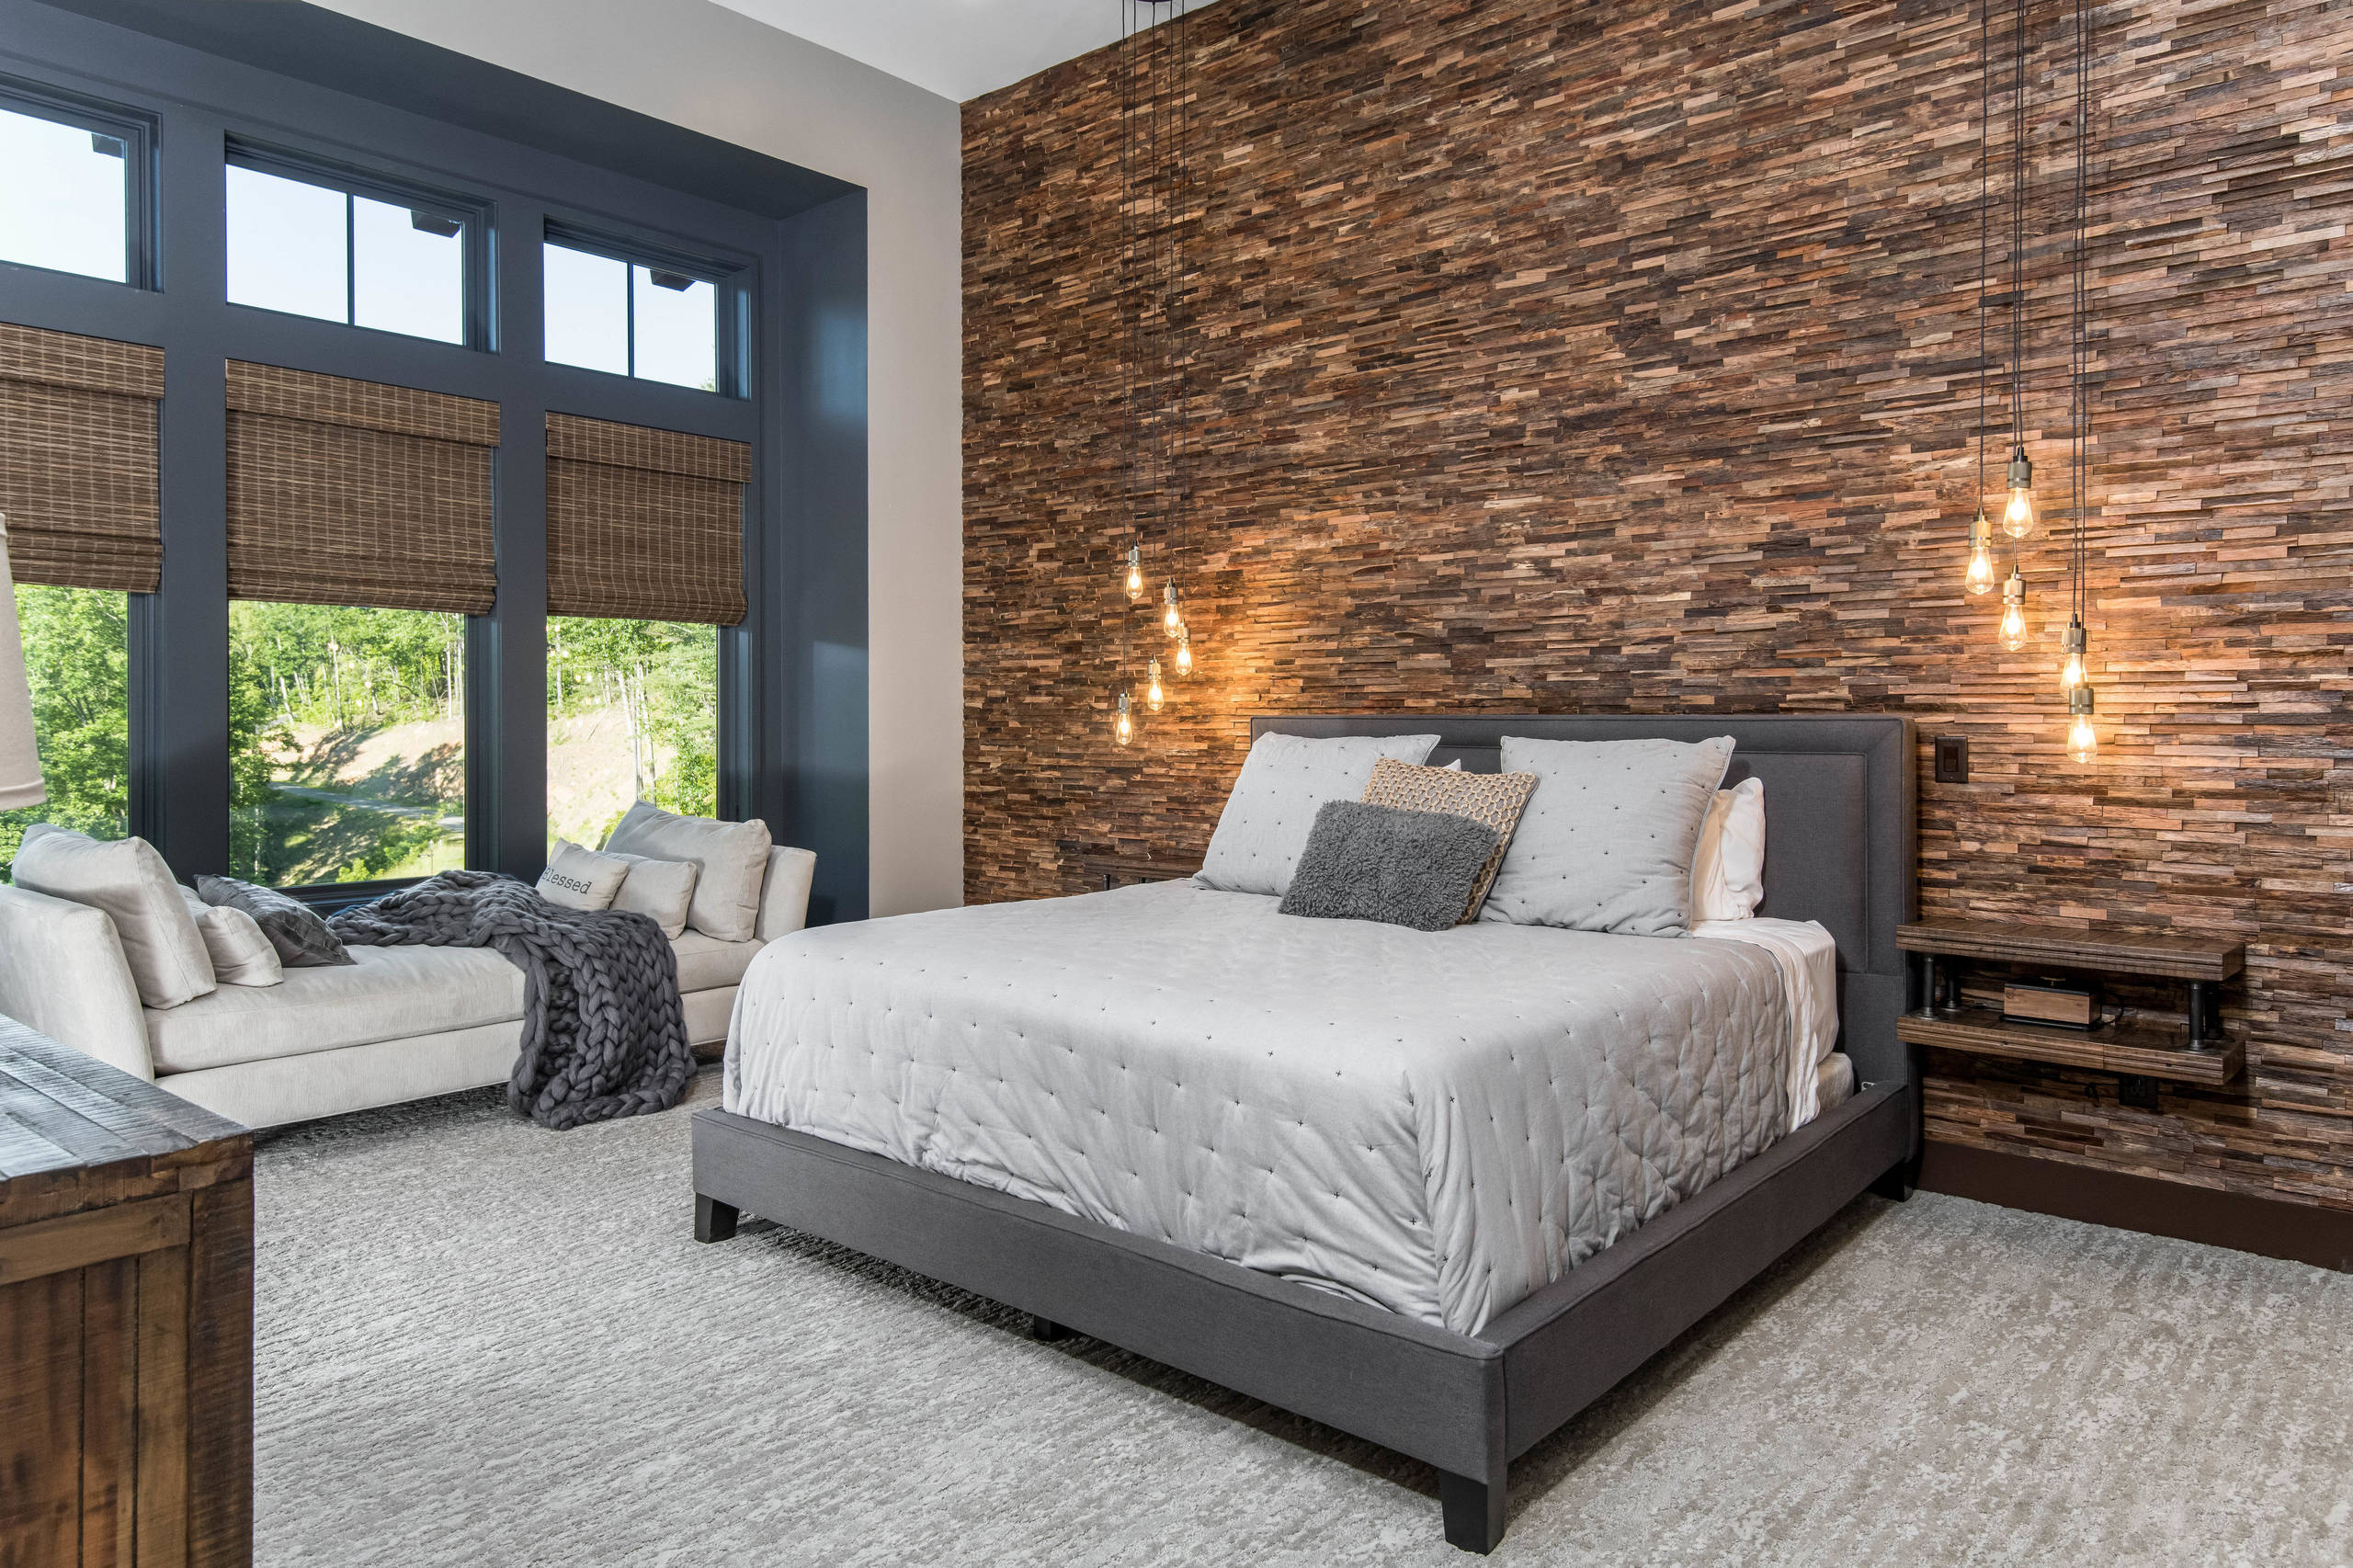 75 Beautiful Rustic Bedroom Pictures Ideas February 2021 Houzz